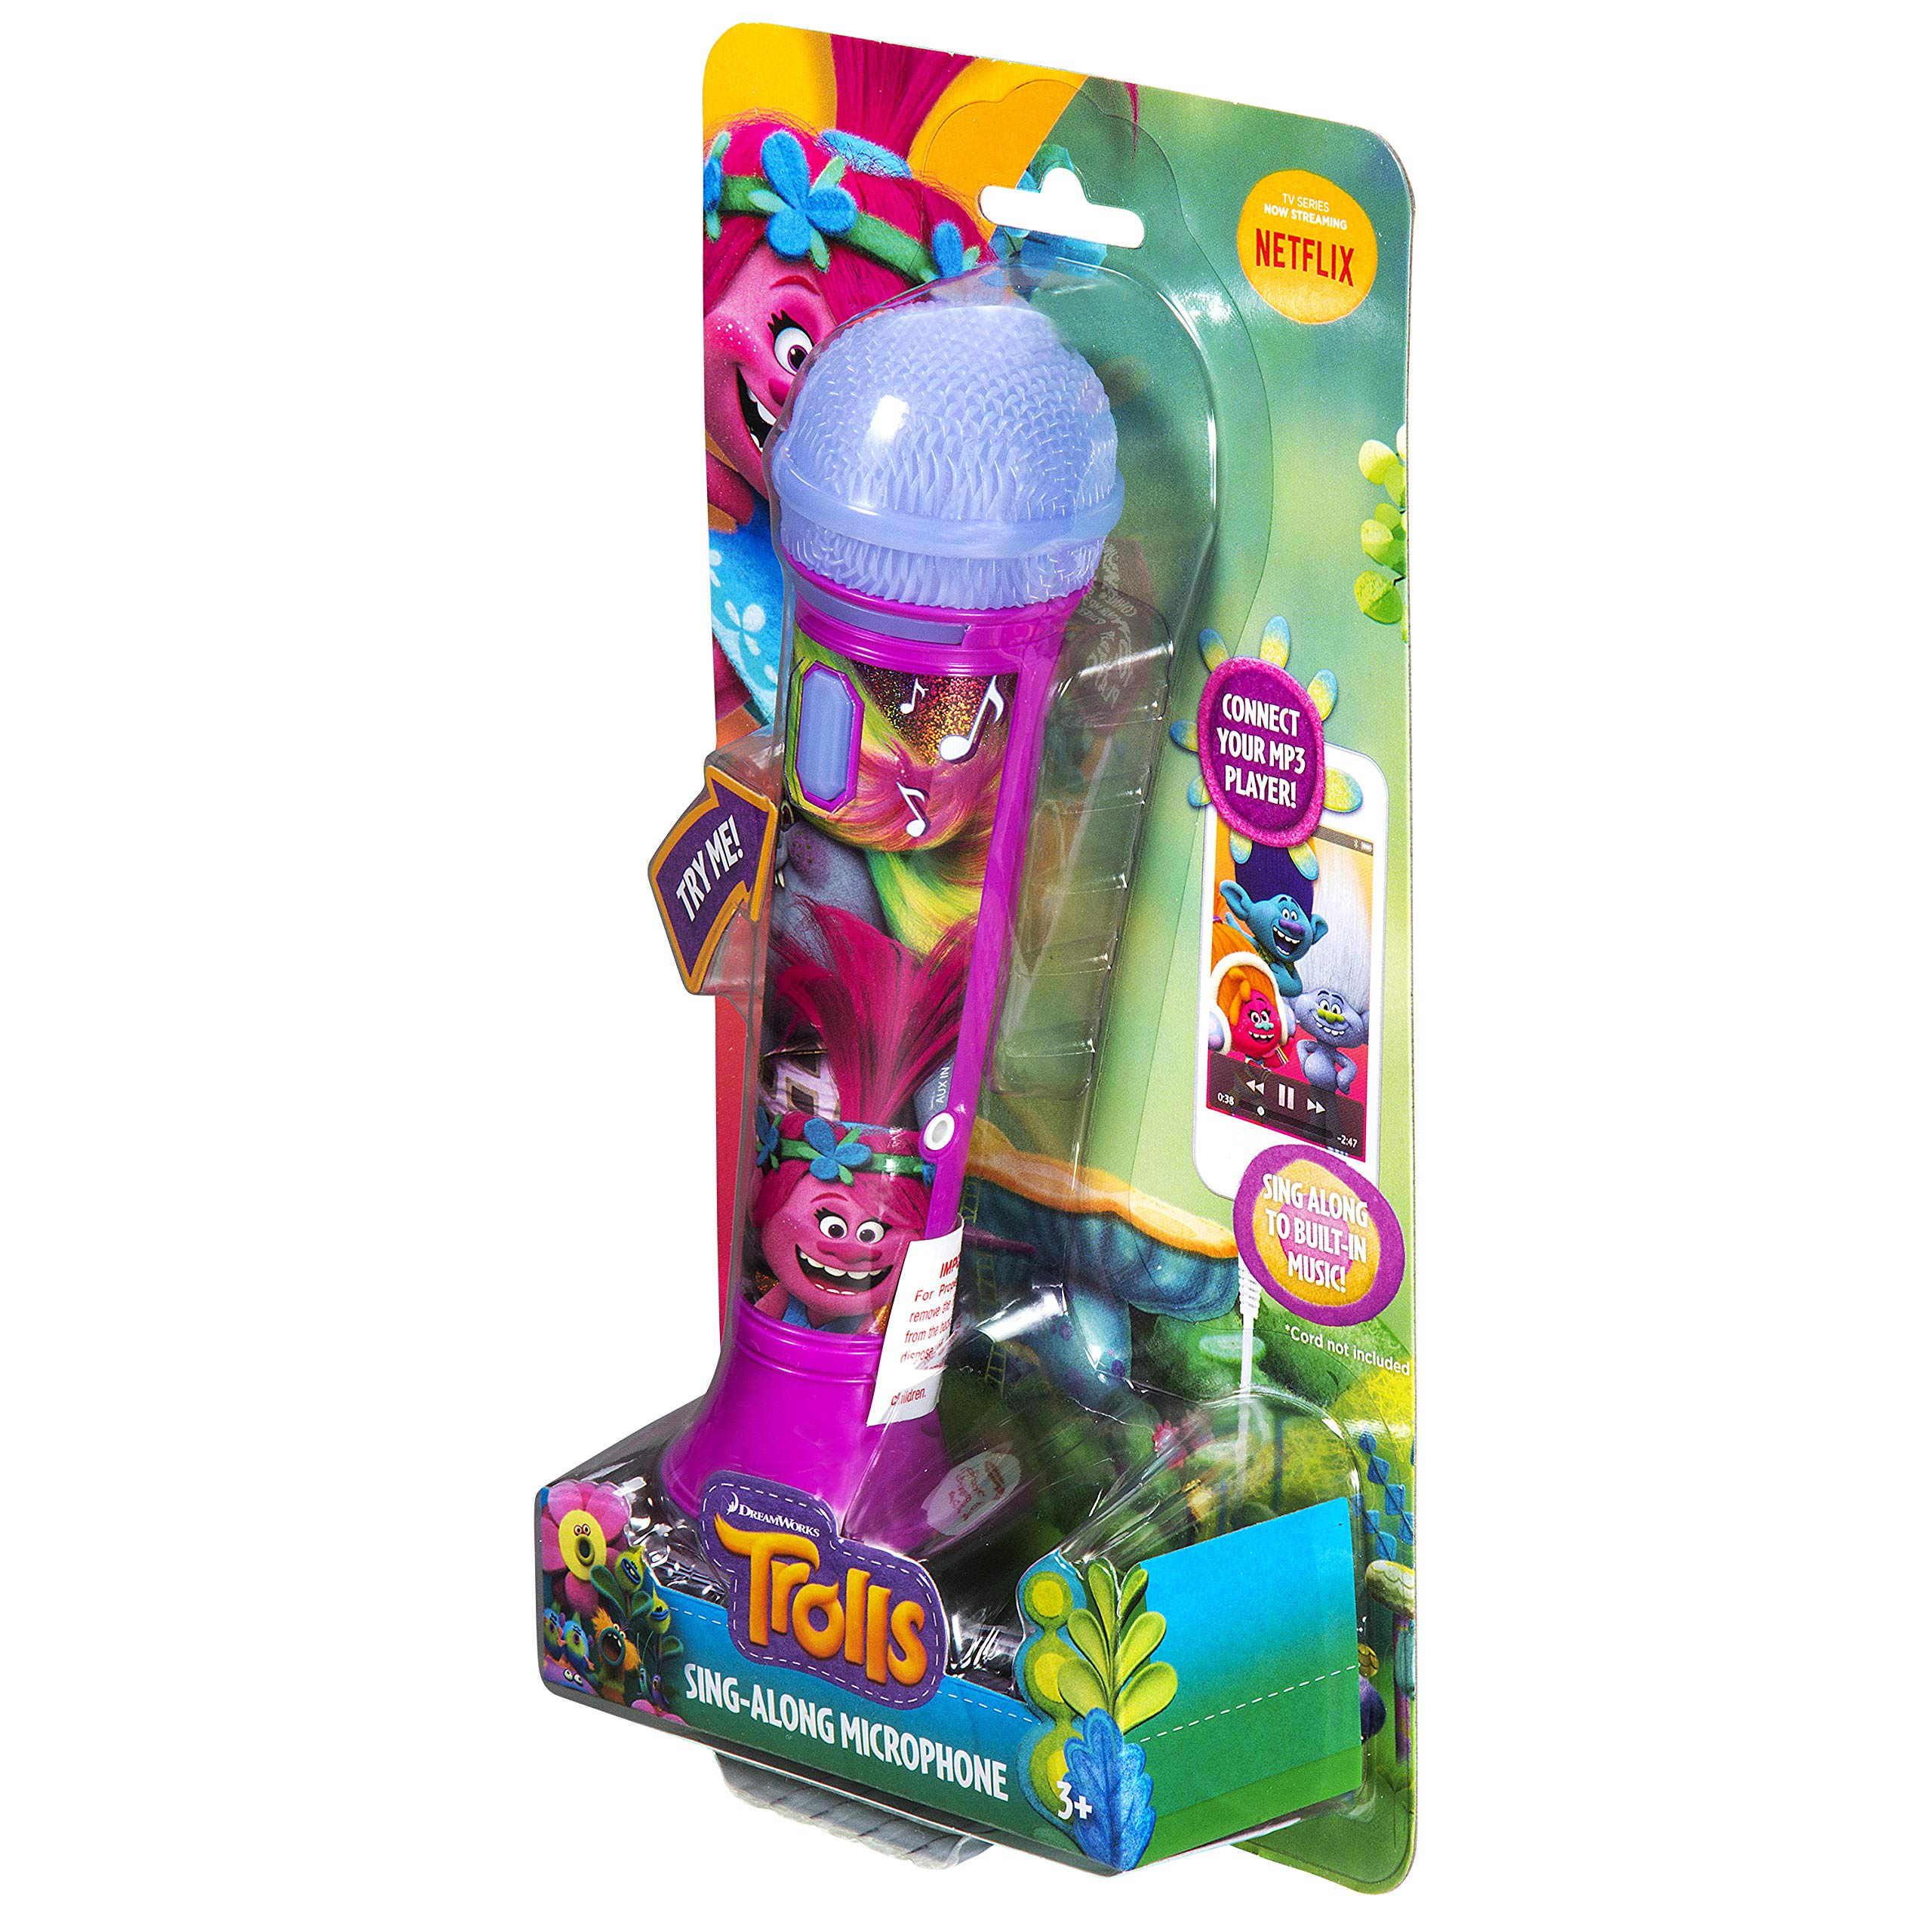 Trolls Sing Along MP3 Microphone Sing to Built in Music or Connect Your Audio Device and Sing to Whatever You Like by eKids (Image #8)